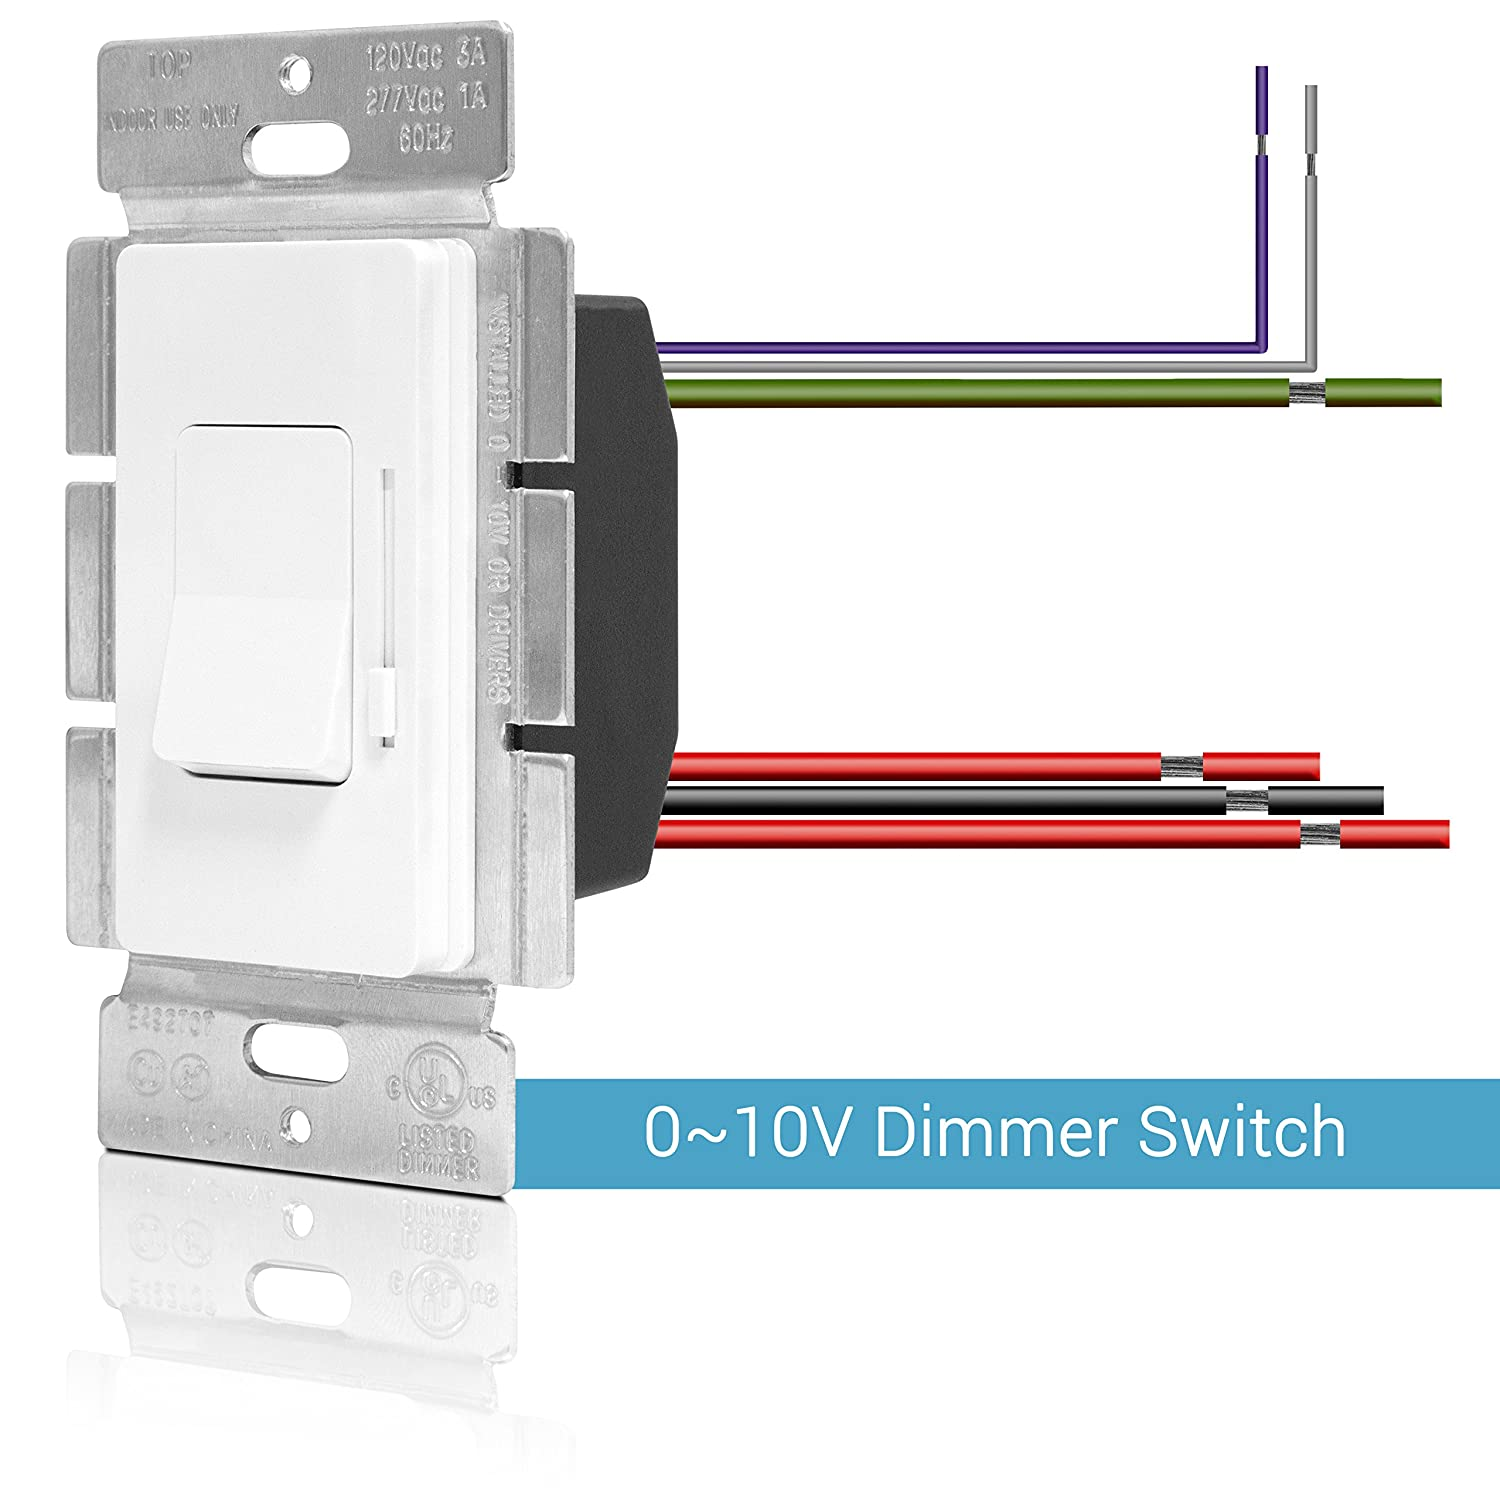 Leviton 3 Way Dimmer Switch Dv 603pg Wiring Diagram Guide And Installing In Four Circuit Doityourselfcom Ip710 Lfz Diagrams 4